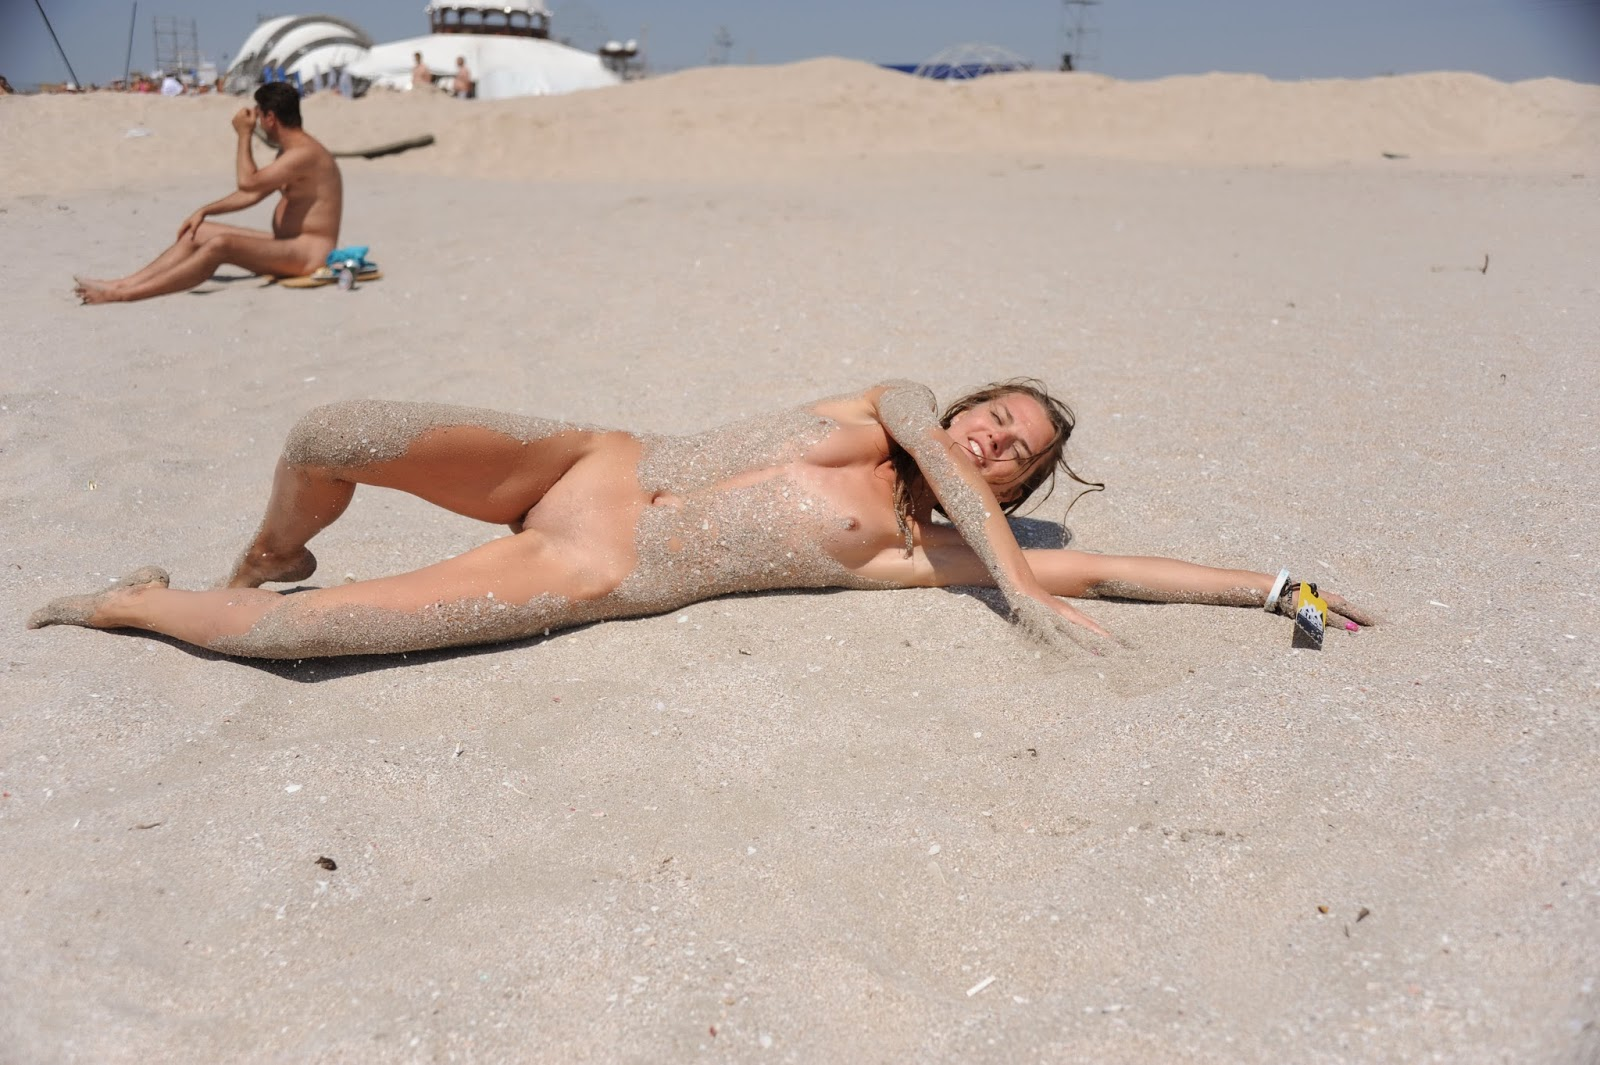 Enature nudist pictures brilliant